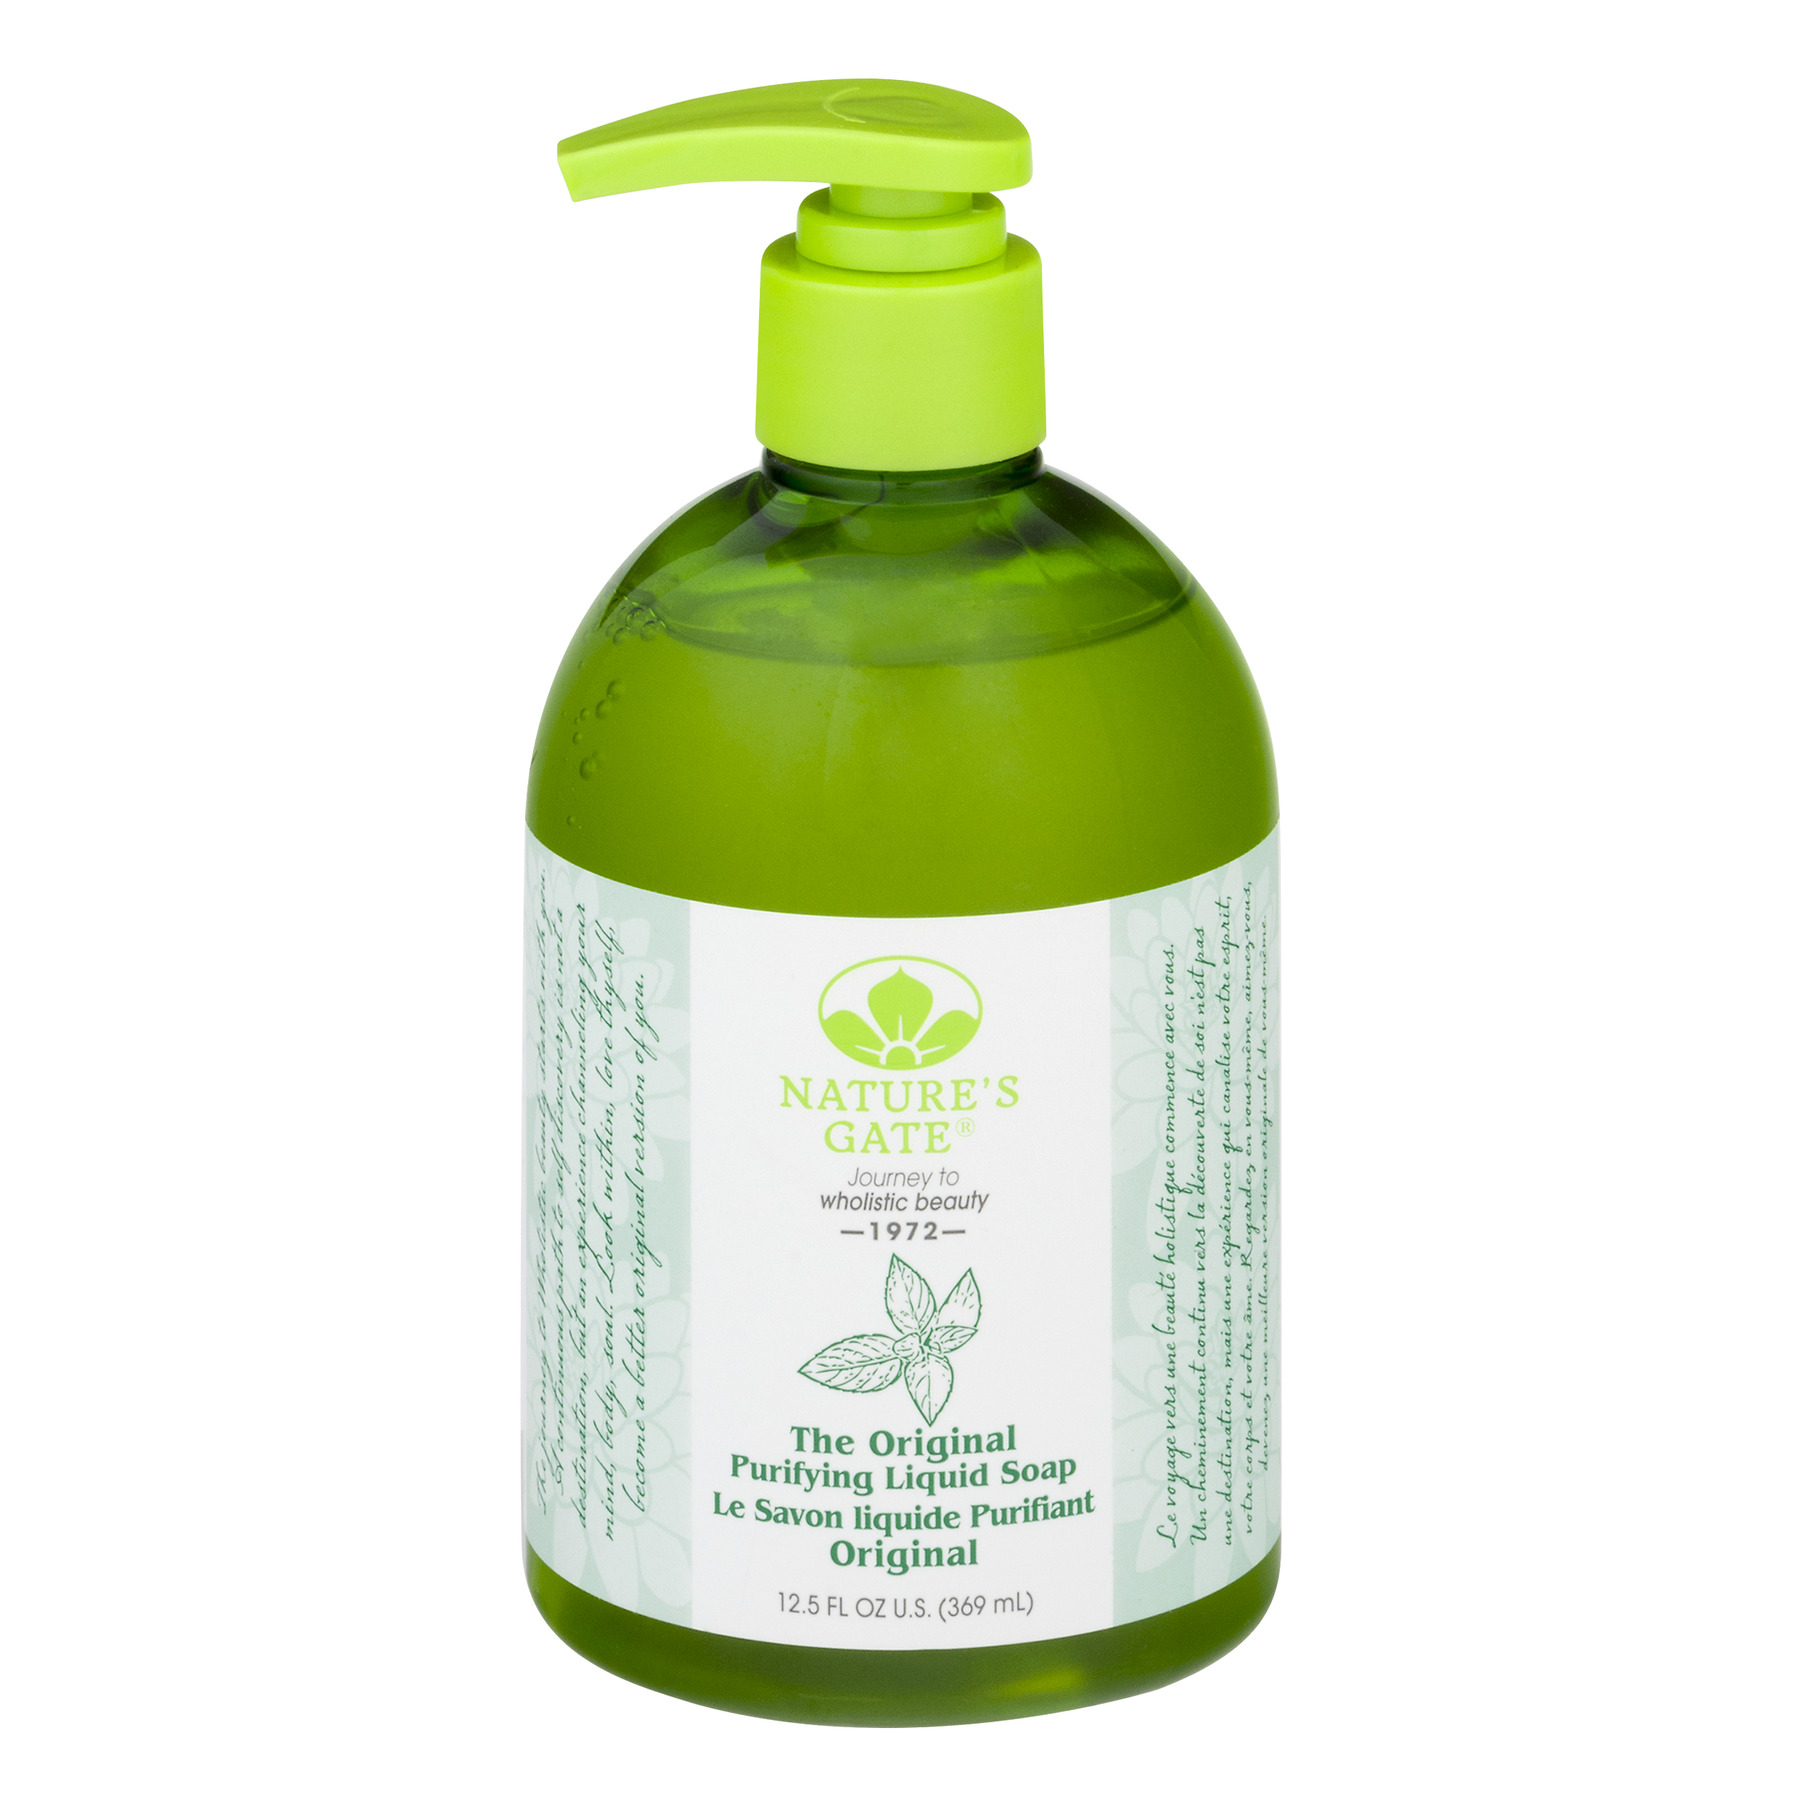 Nature's Gate Purifying Liquid Hand Soap, 12.5 Fl Oz